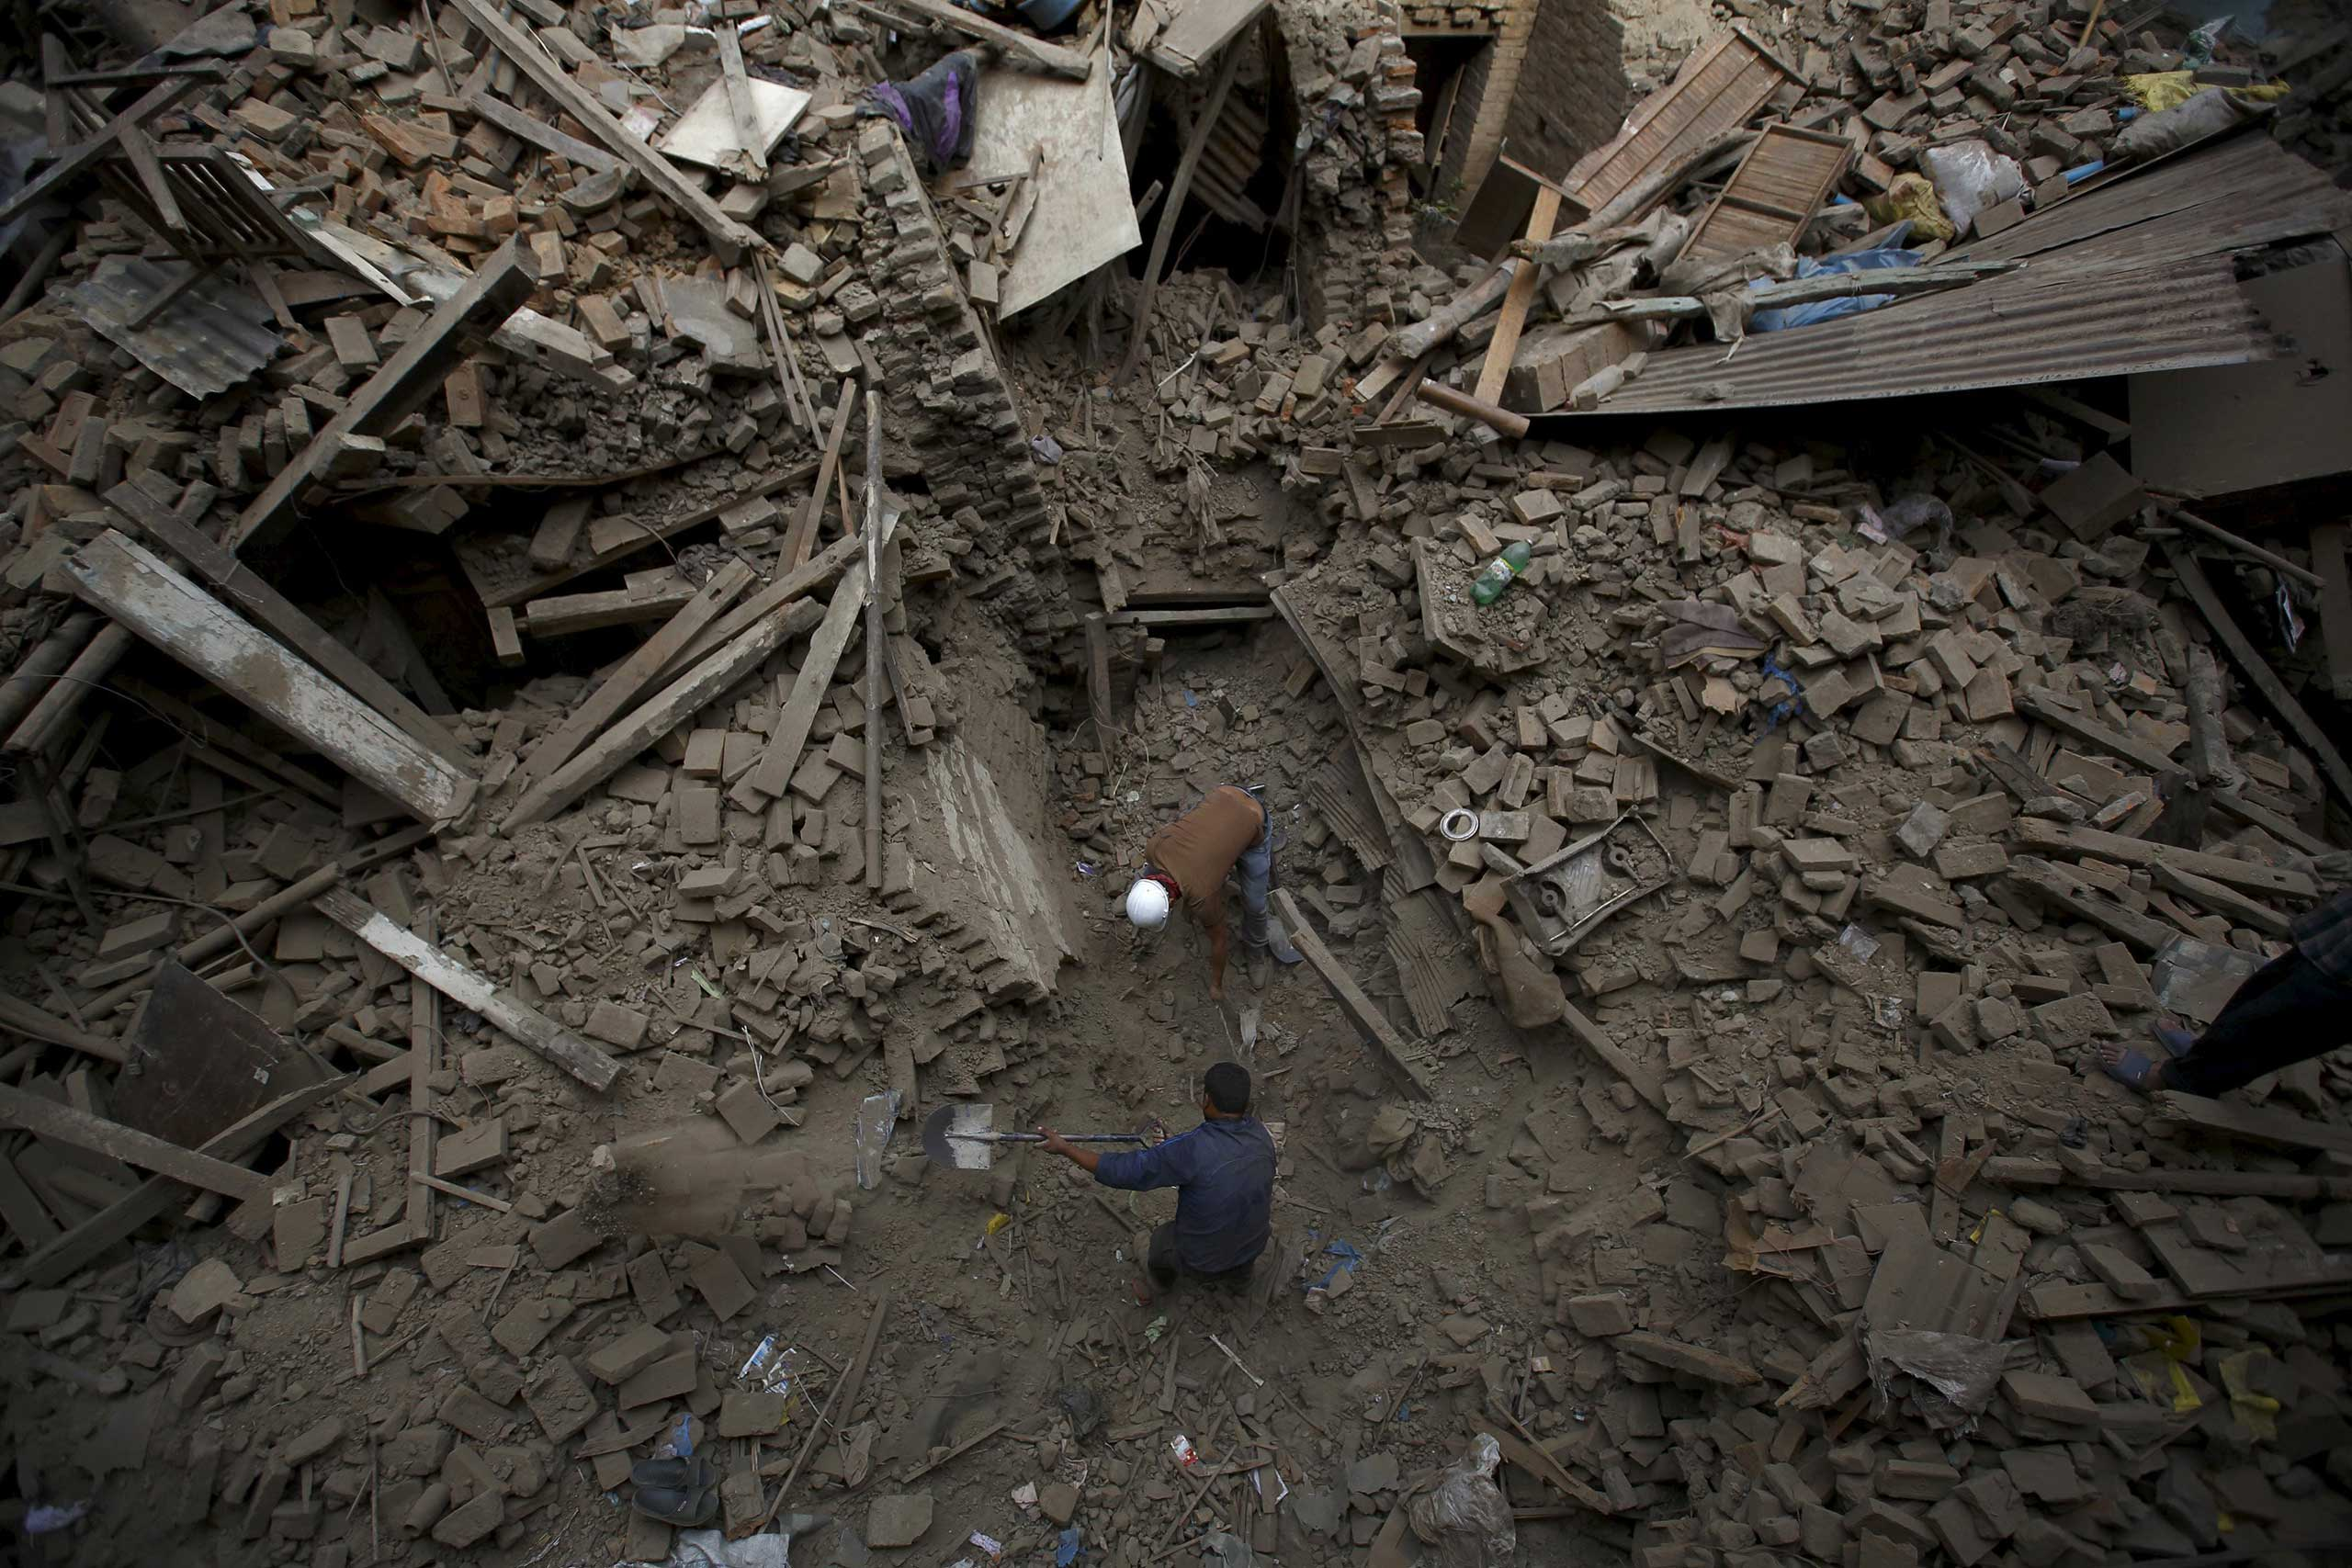 People search for family members trapped inside collapsed houses a day after an earthquake in Bhaktapur, Nepal on April 26, 2015.